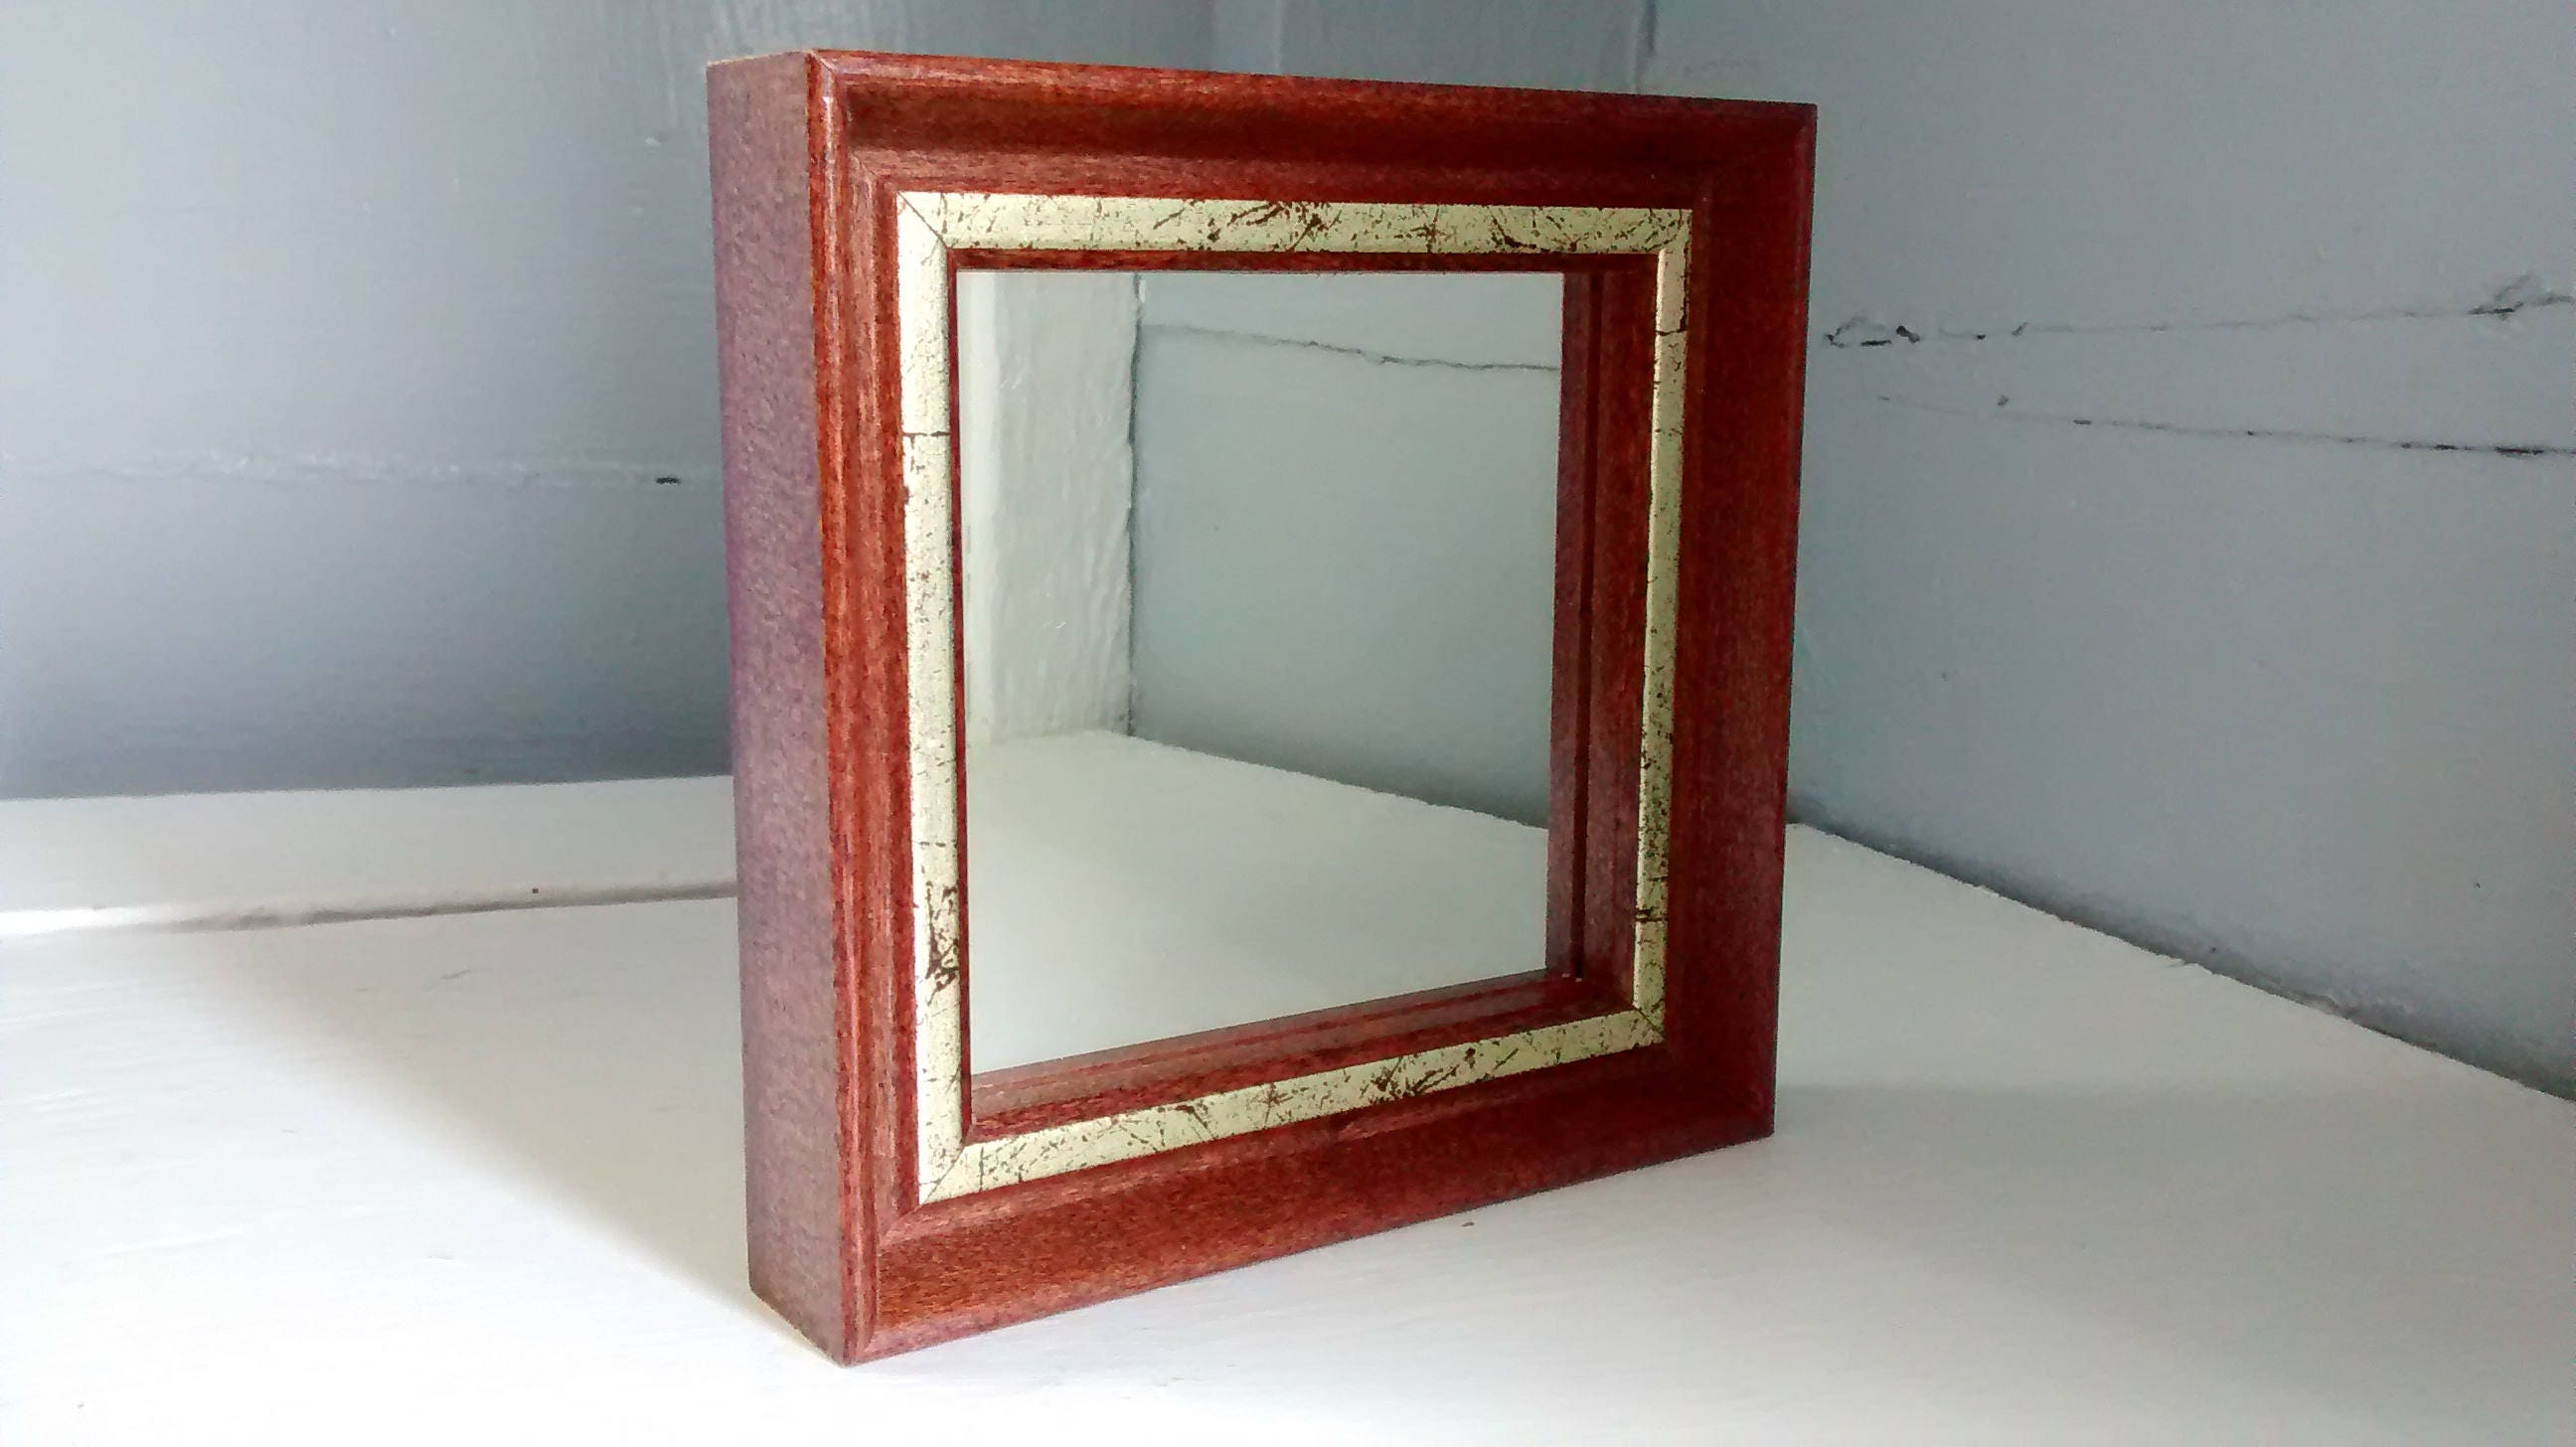 Vintage Darling Square Accent Mirror Wall Mirror Square Framed Small Vintage Home Decor 80s Decor Rhymeswithdaughter